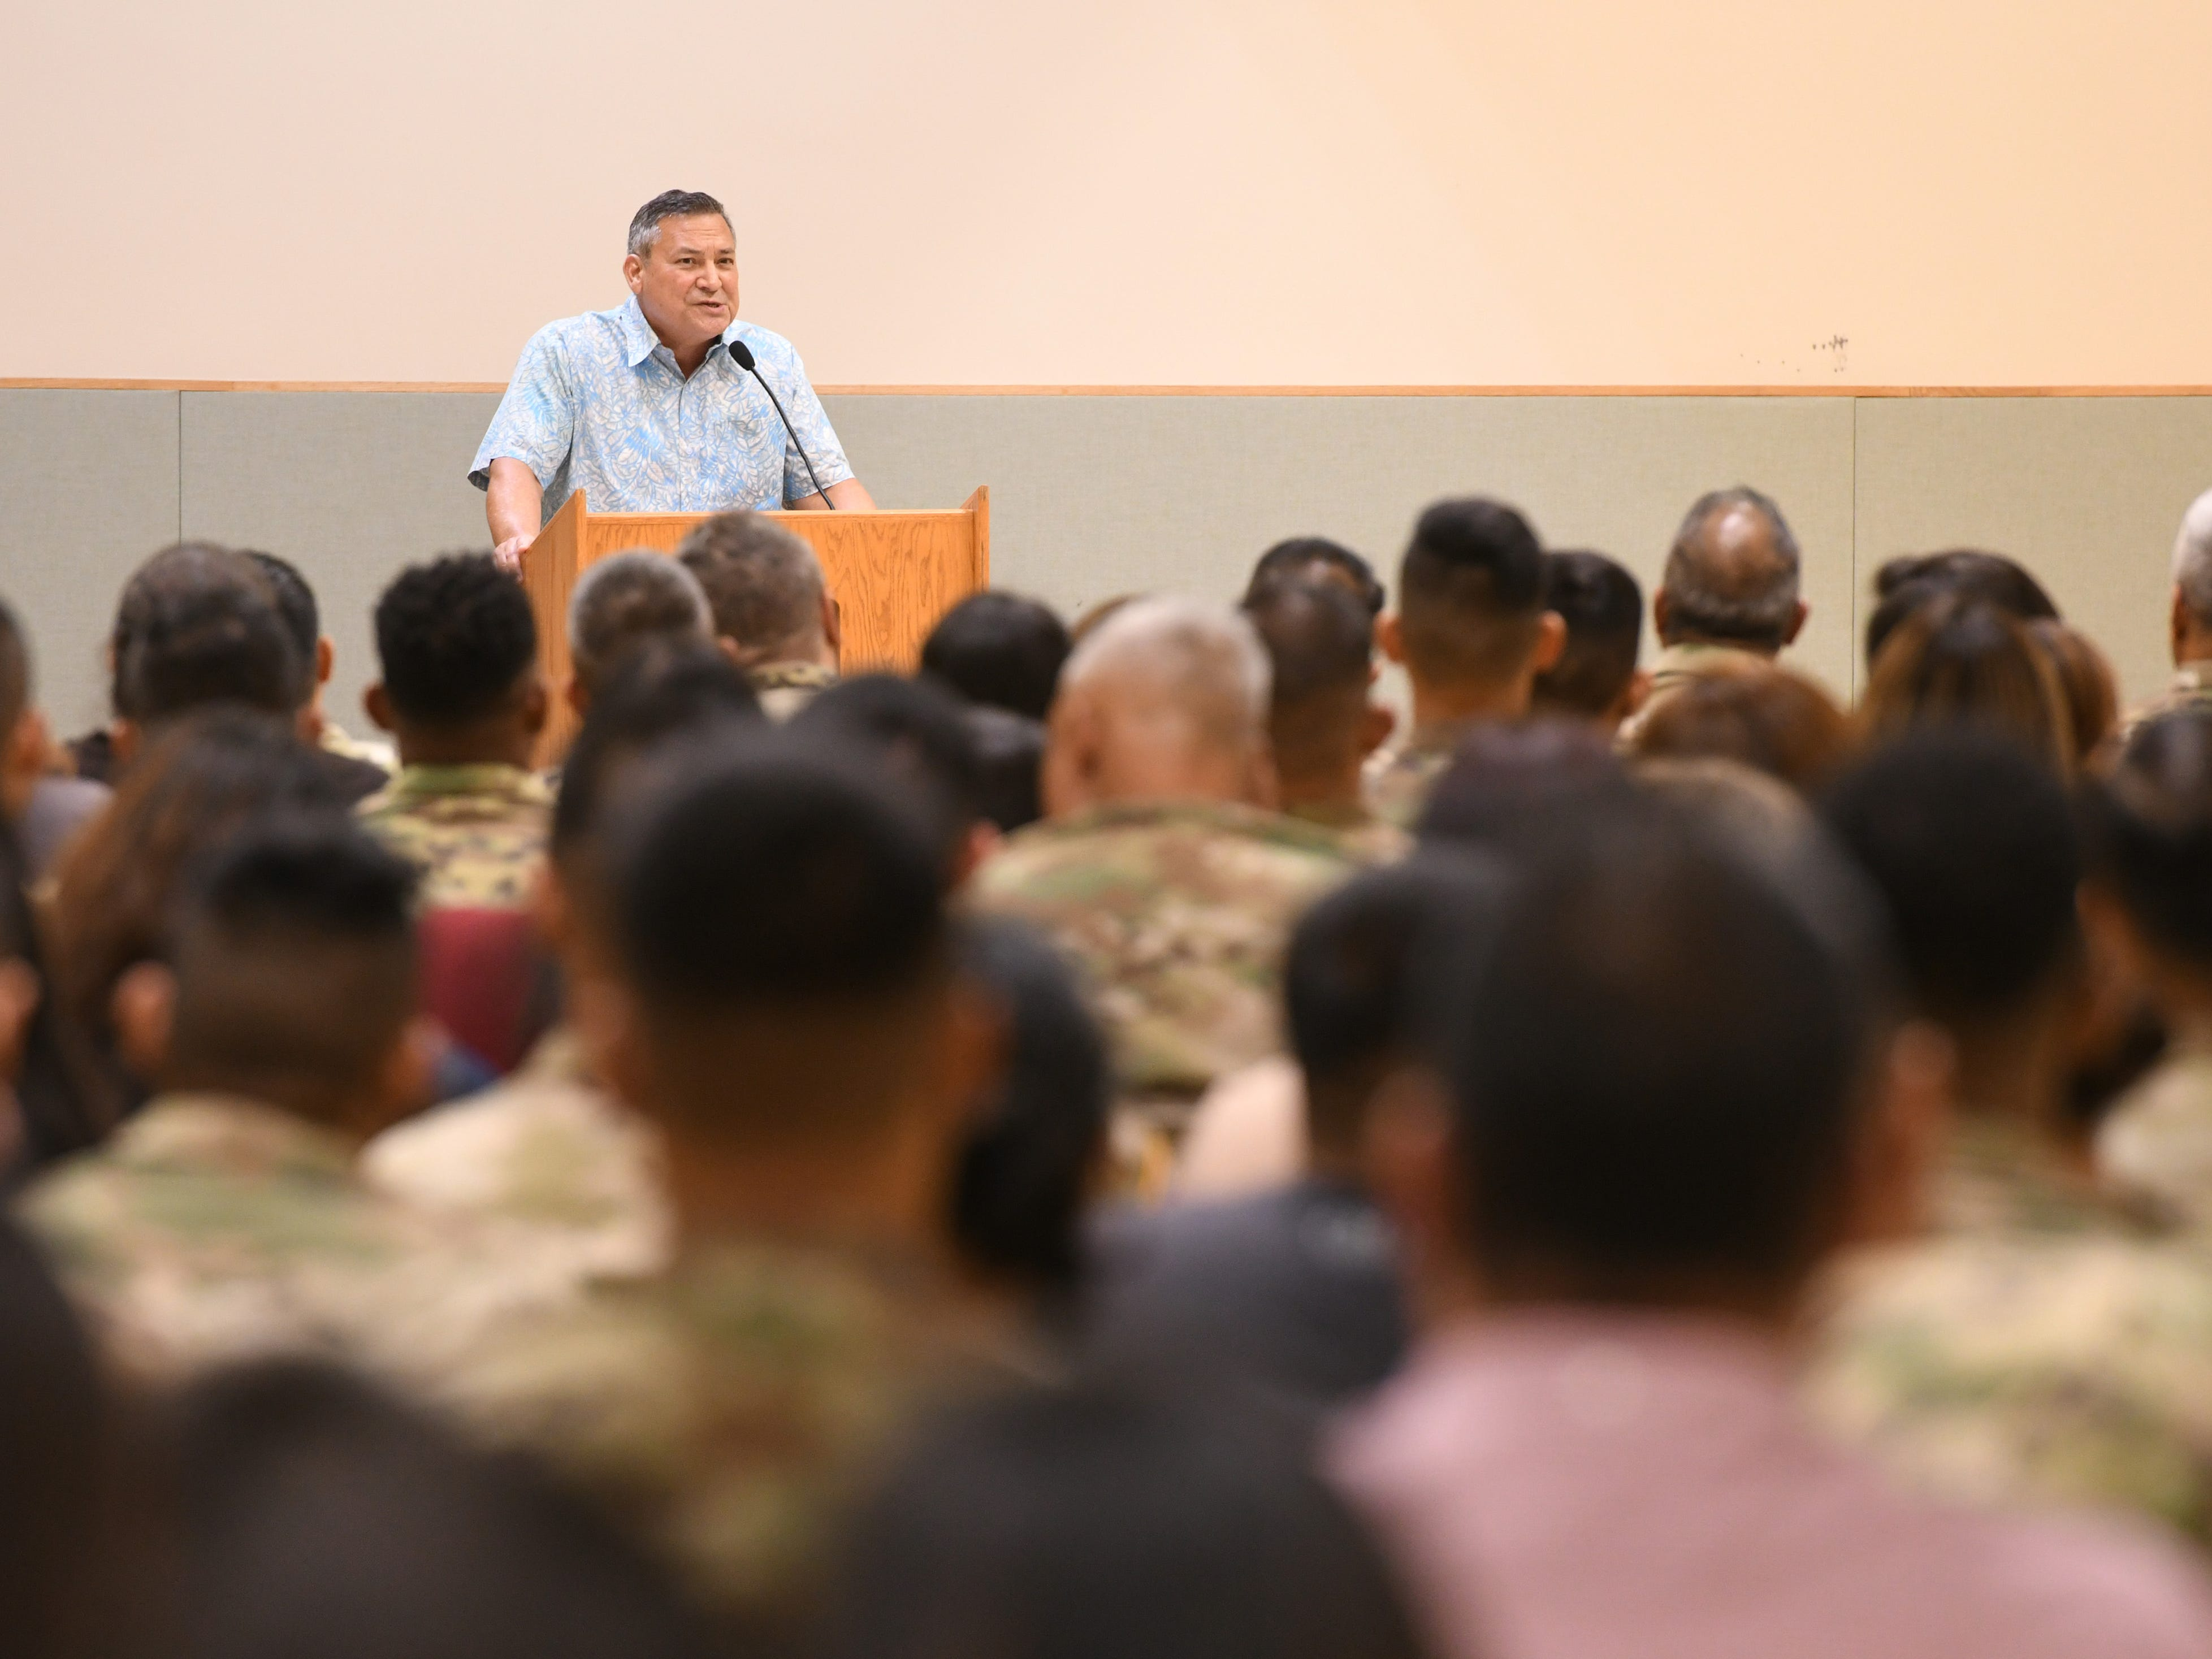 Gov. Eddie Calvo speaks to 71 soldiers of the Guard's 254th Security Forces 1st-294th Infantry Regiment, along with their families, friends and other supporters during a mobilization ceremony at the Guard's compound in Barrigada on Thursday, Jan. 3, 2019. The soldiers were recgonized during the event as they prepare to undertake a yearlong mission to provide security for the Terminal High Altitude Area Defense Site at Andersen Air Force Base, according to a Guard release.